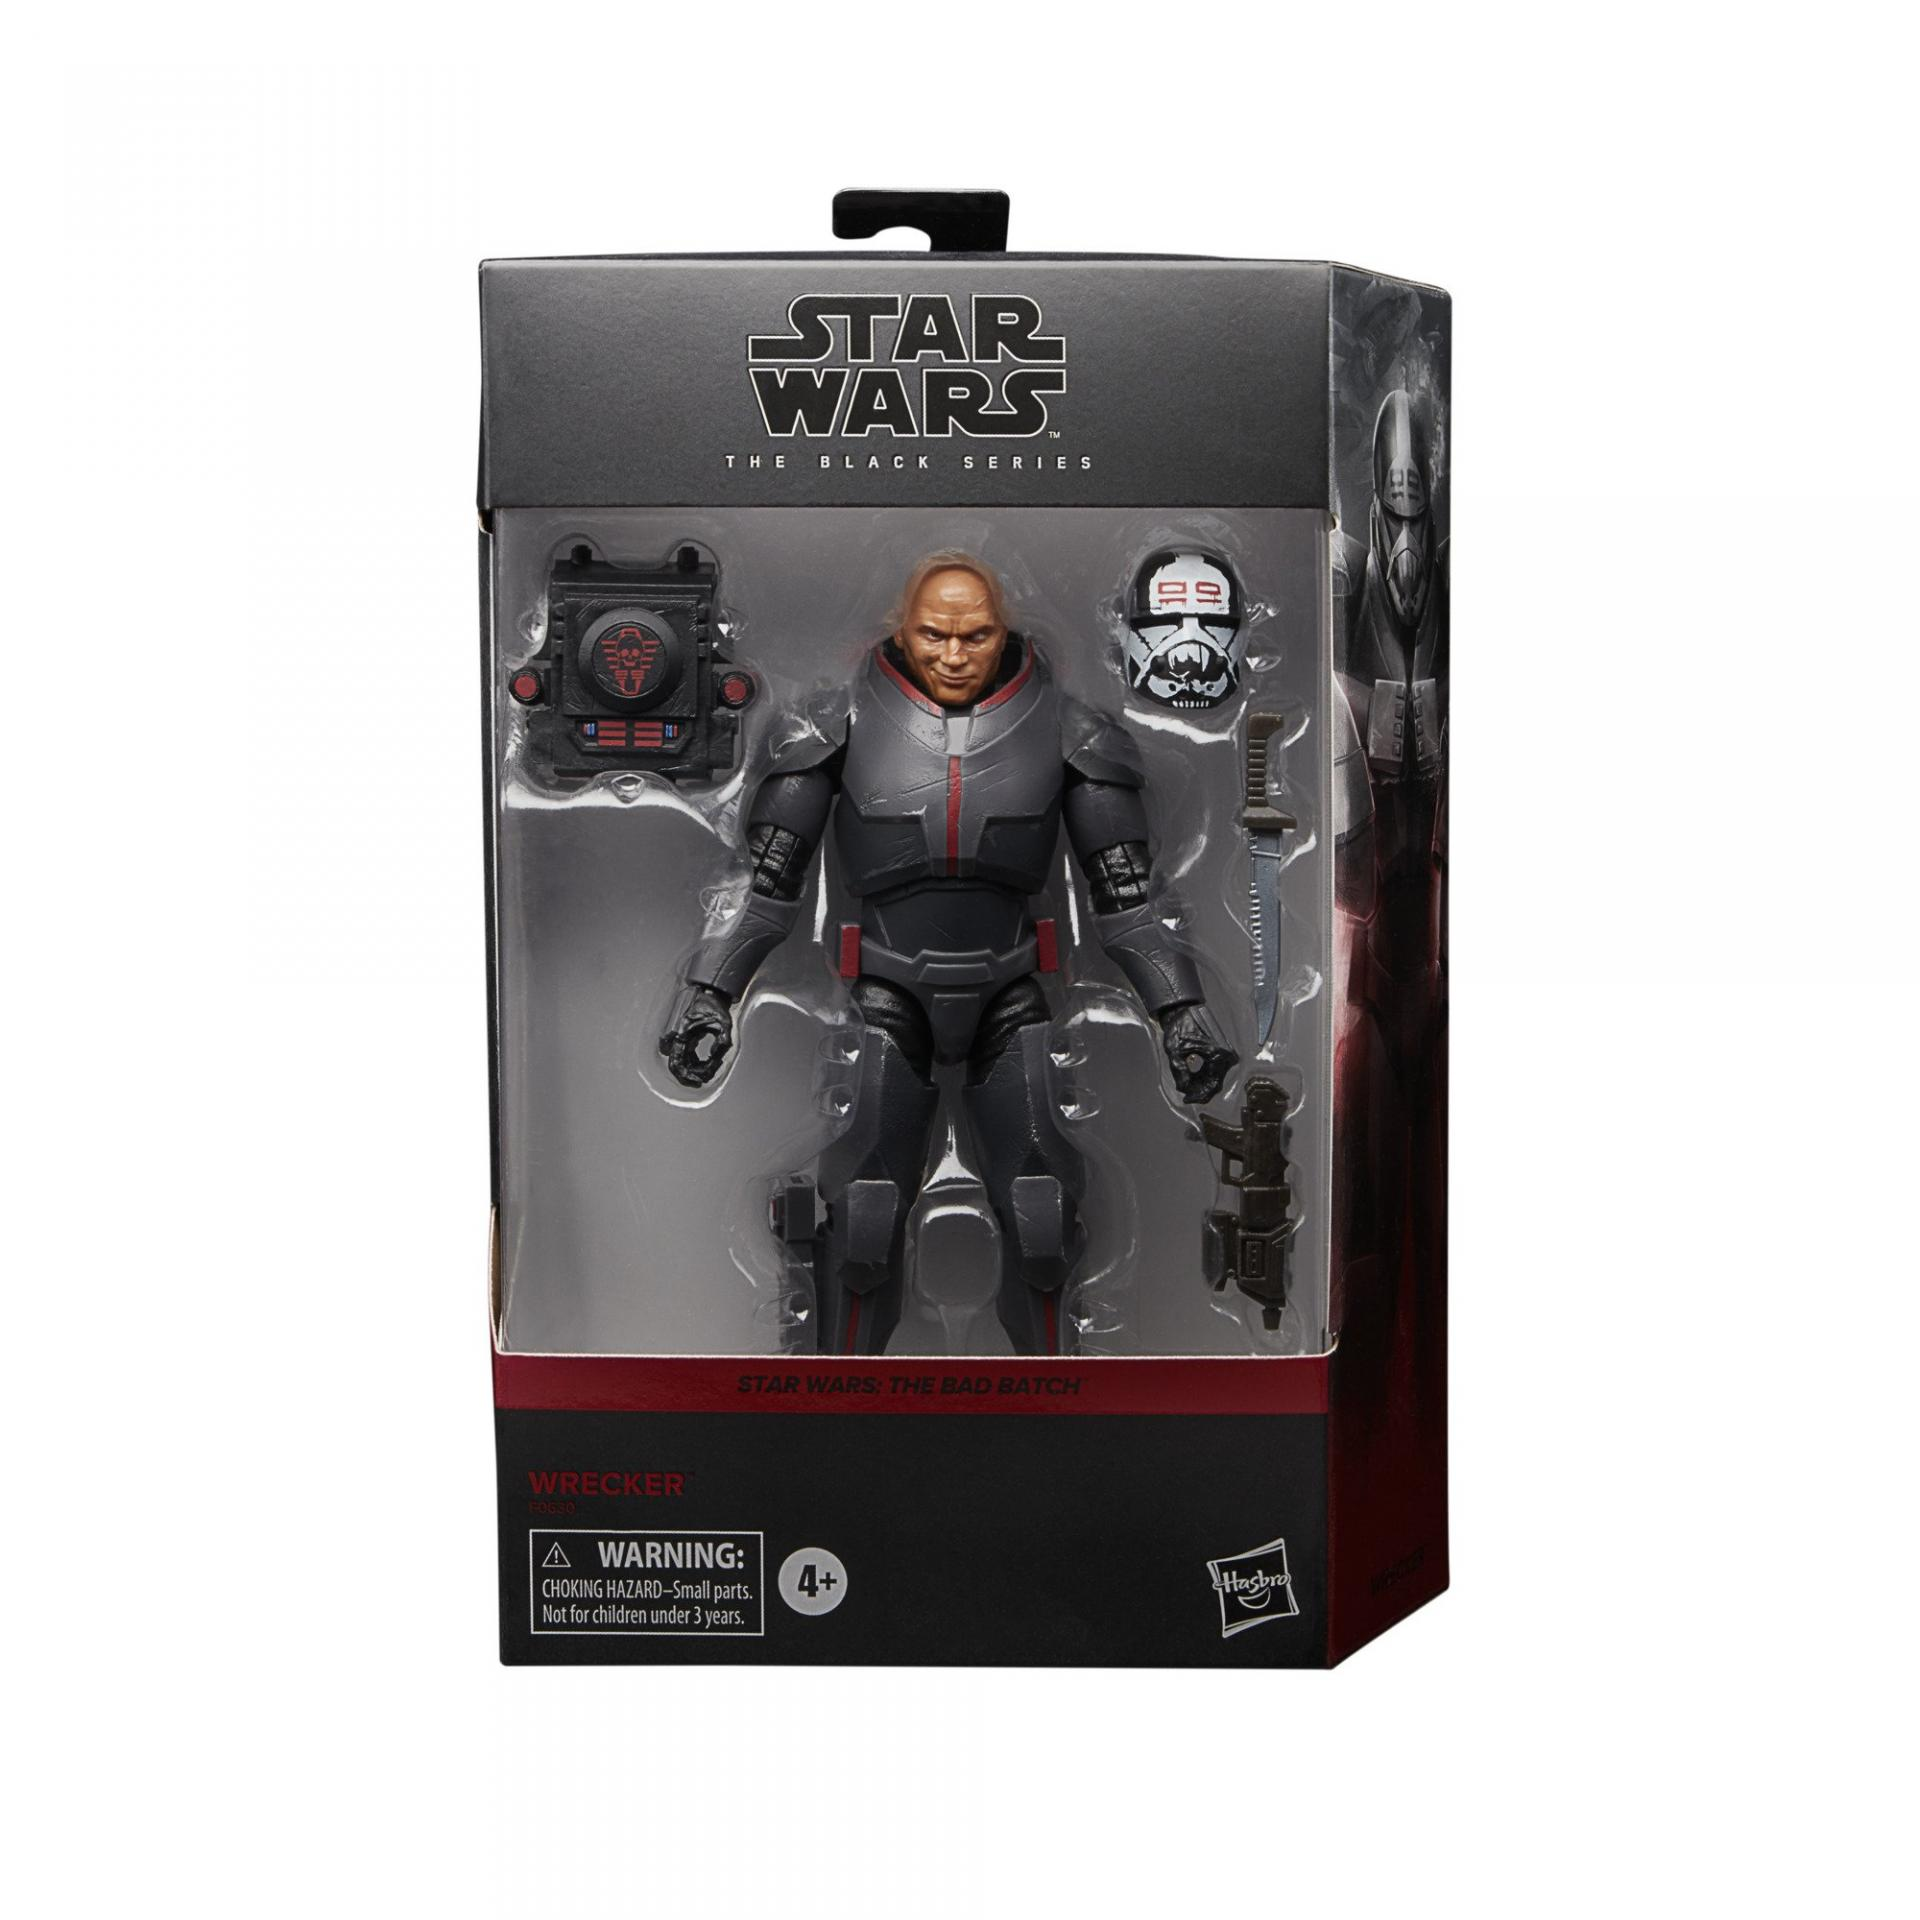 Star wars the black series bad batch wrecker deluxe 15cm9